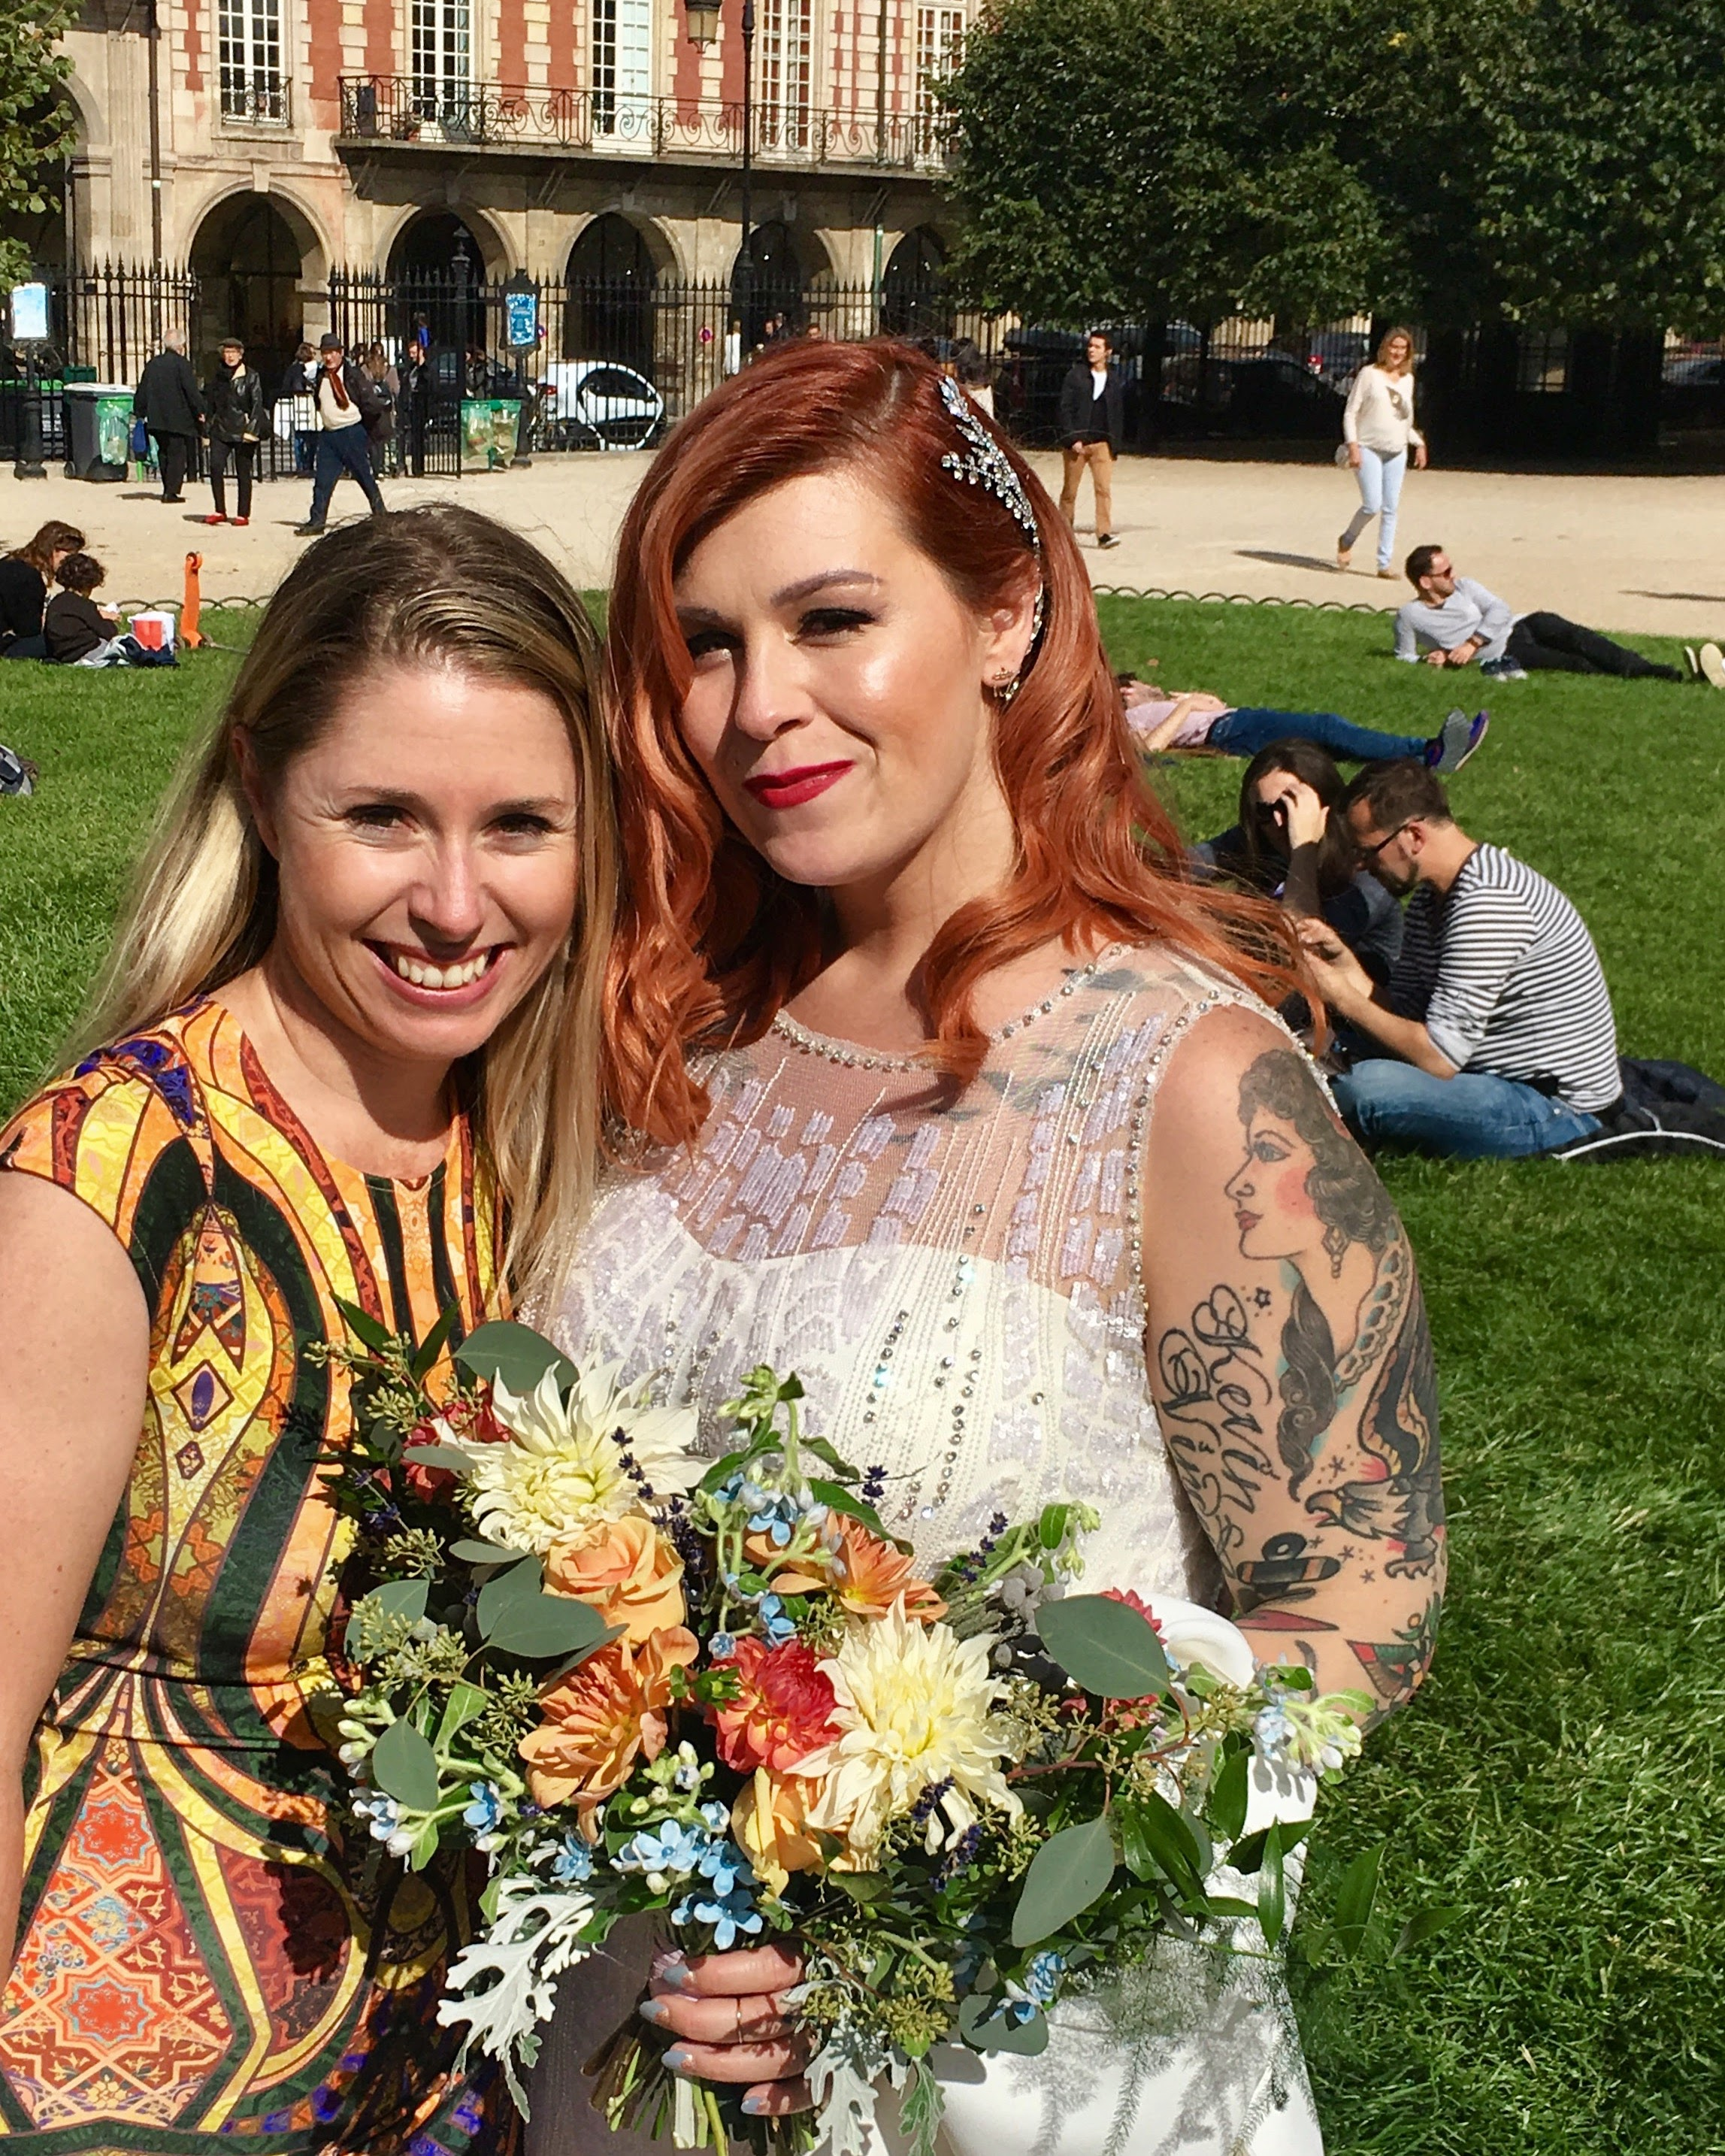 Loving full-time flower life with a gorgeous bride